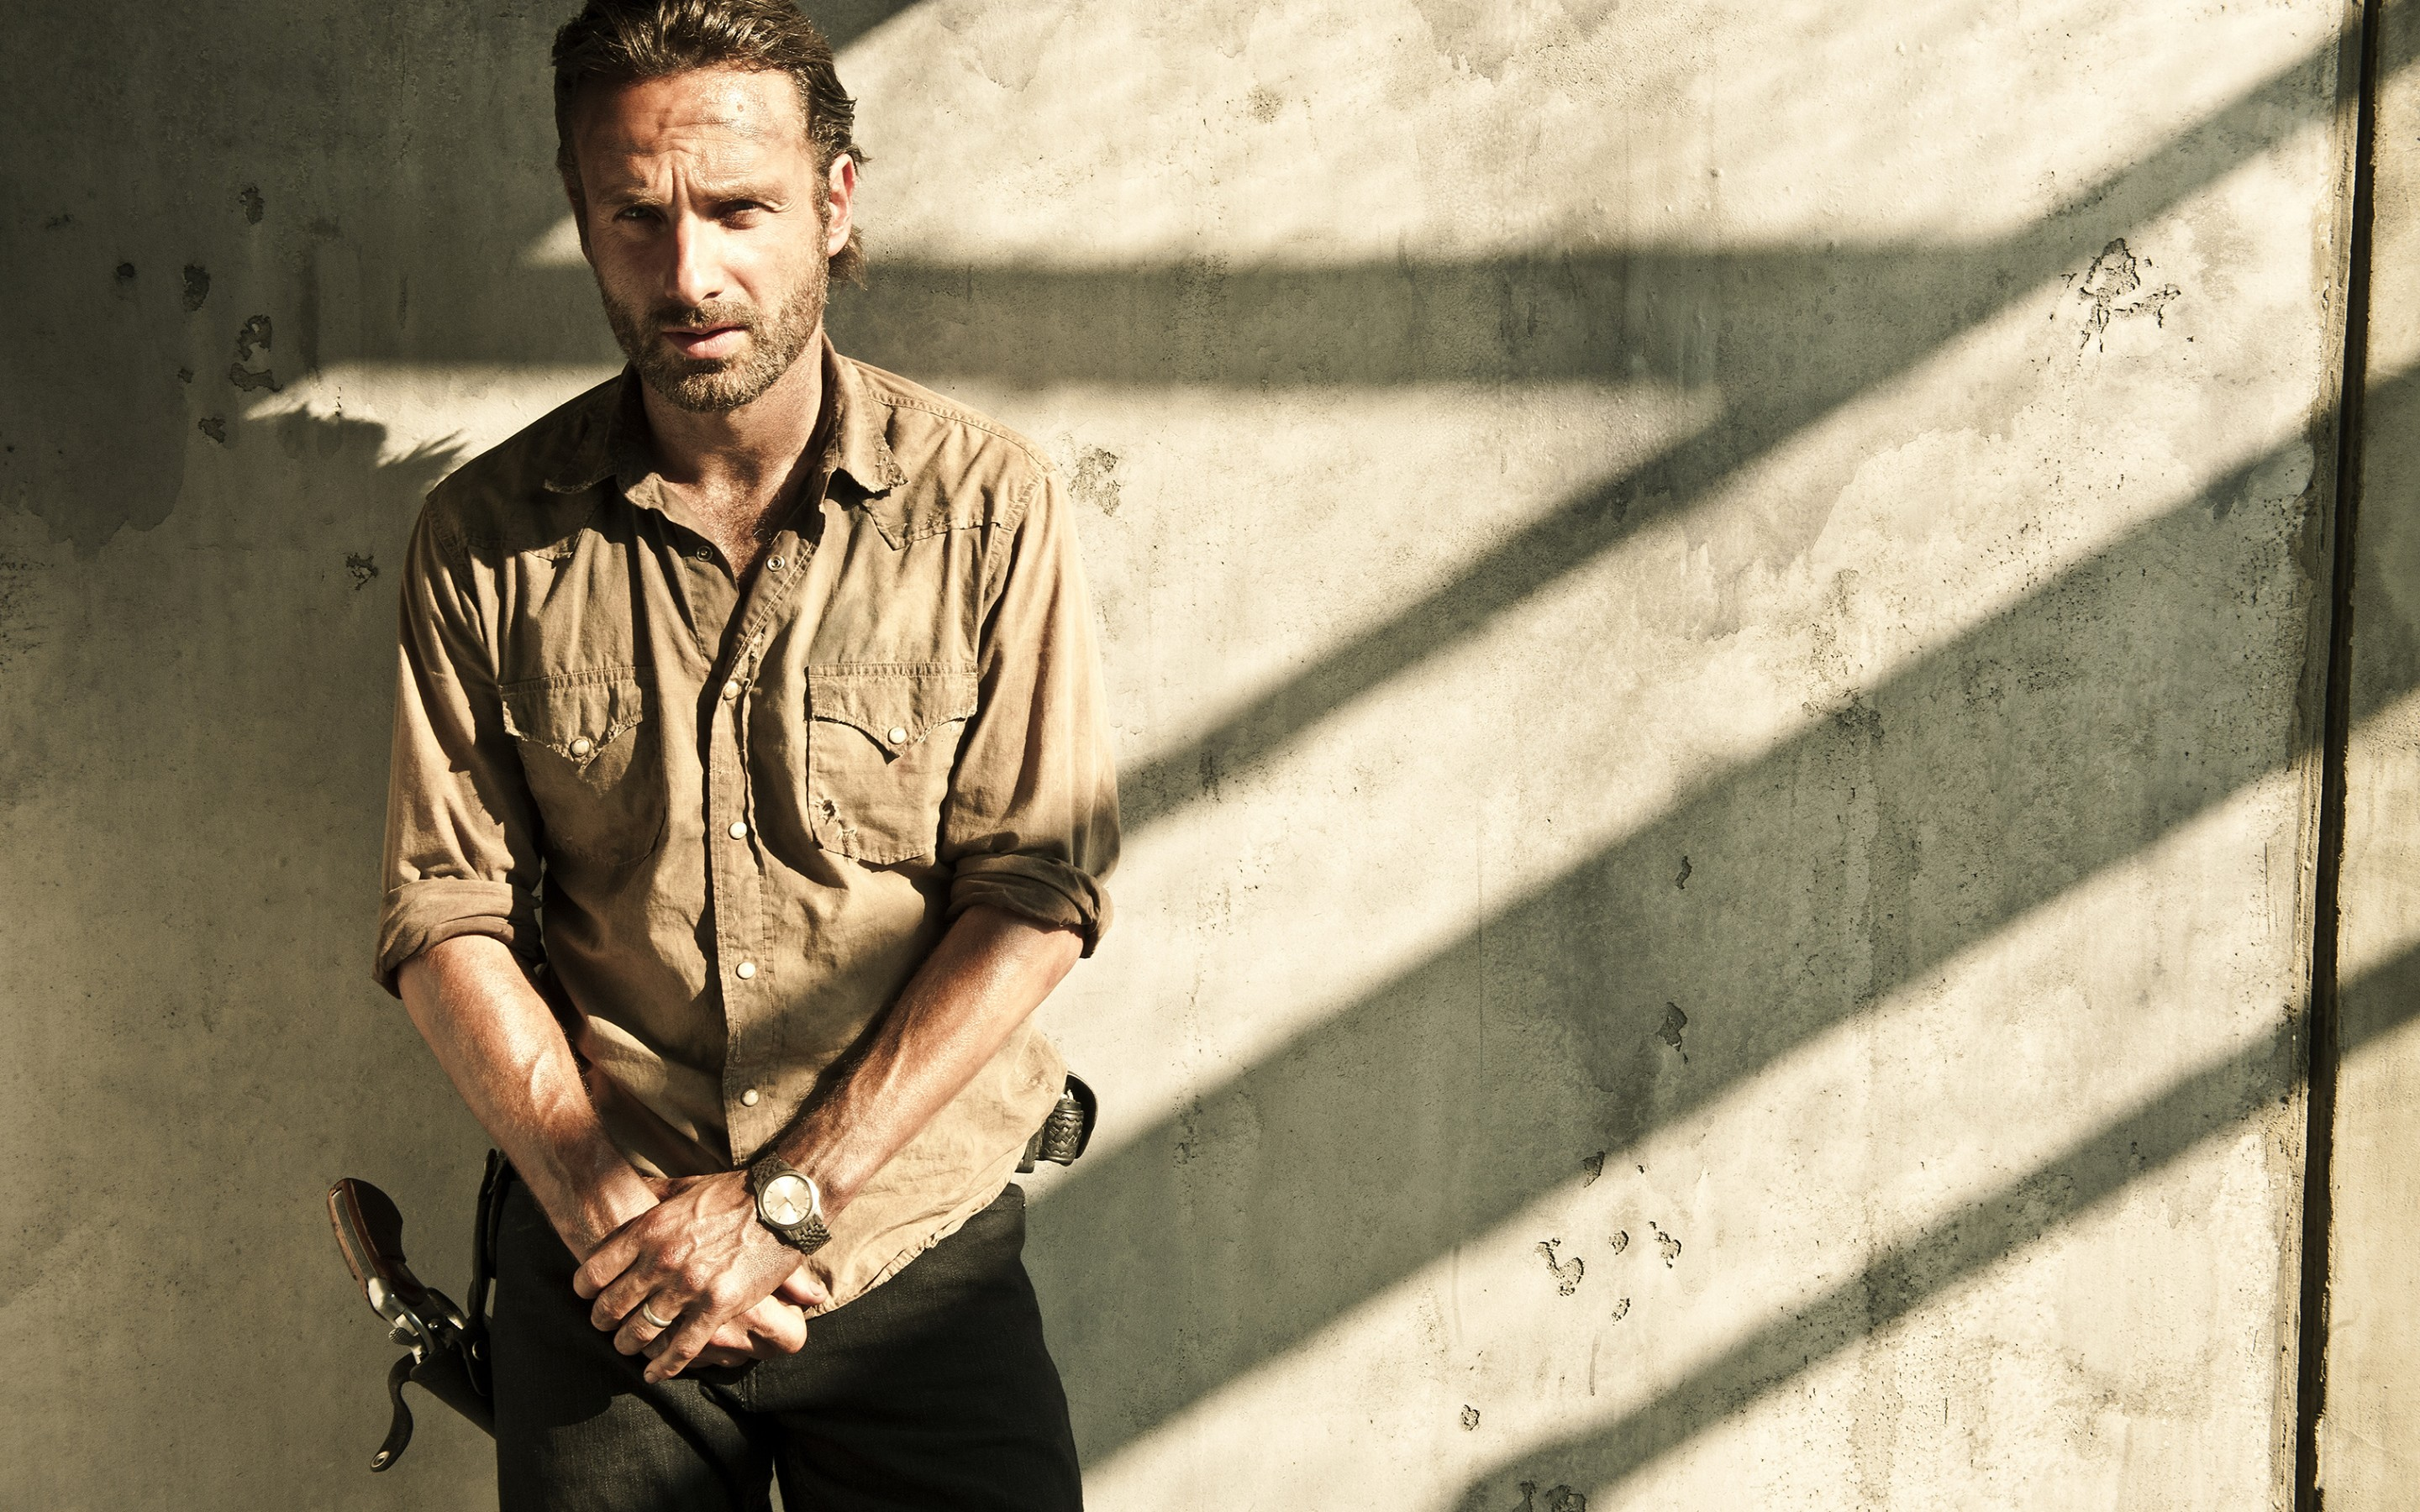 Wallpaper Of Rick Grimes The Walking Dead Tv Series Background